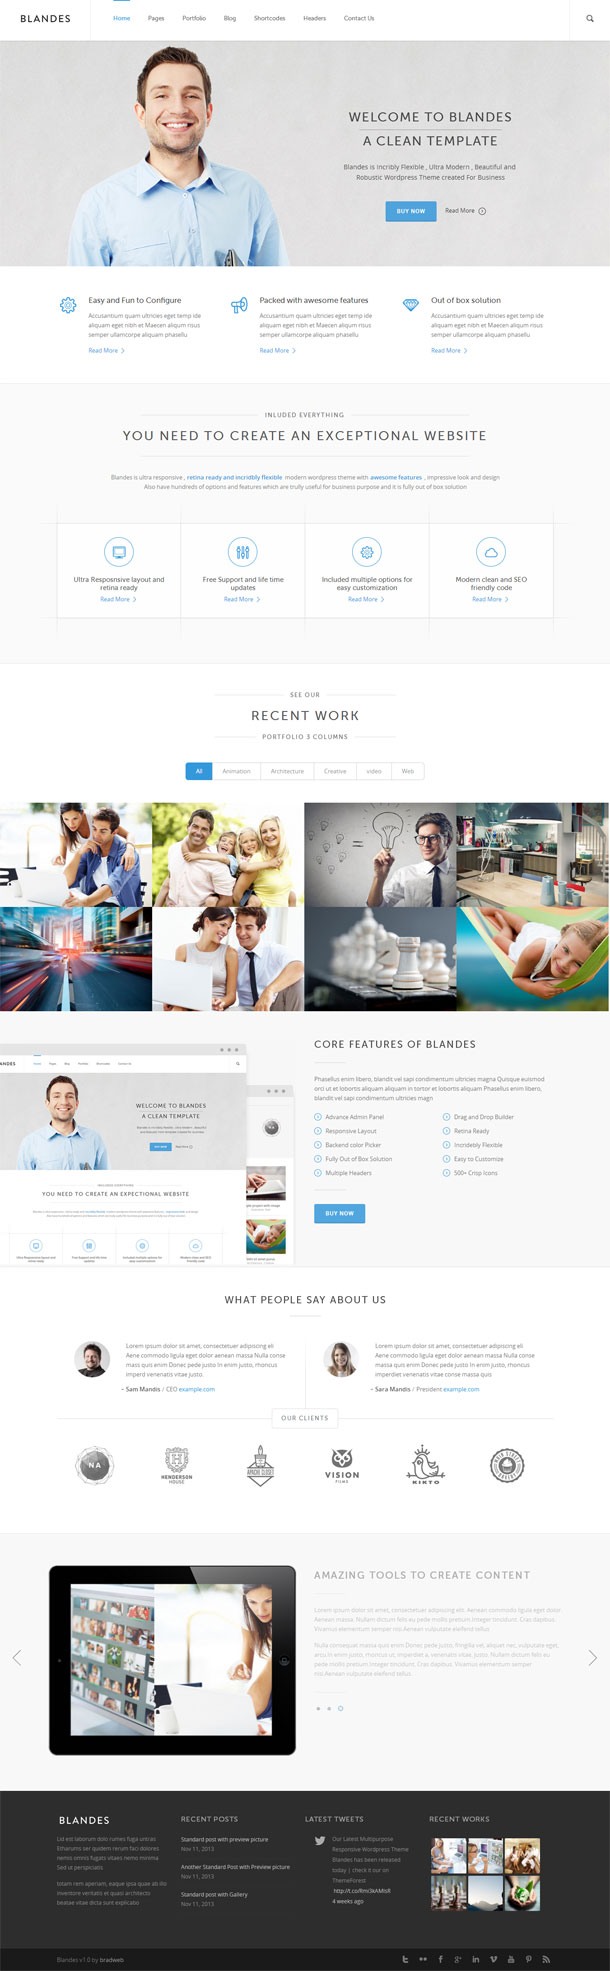 Blandes Best WP Construction Company Theme Image